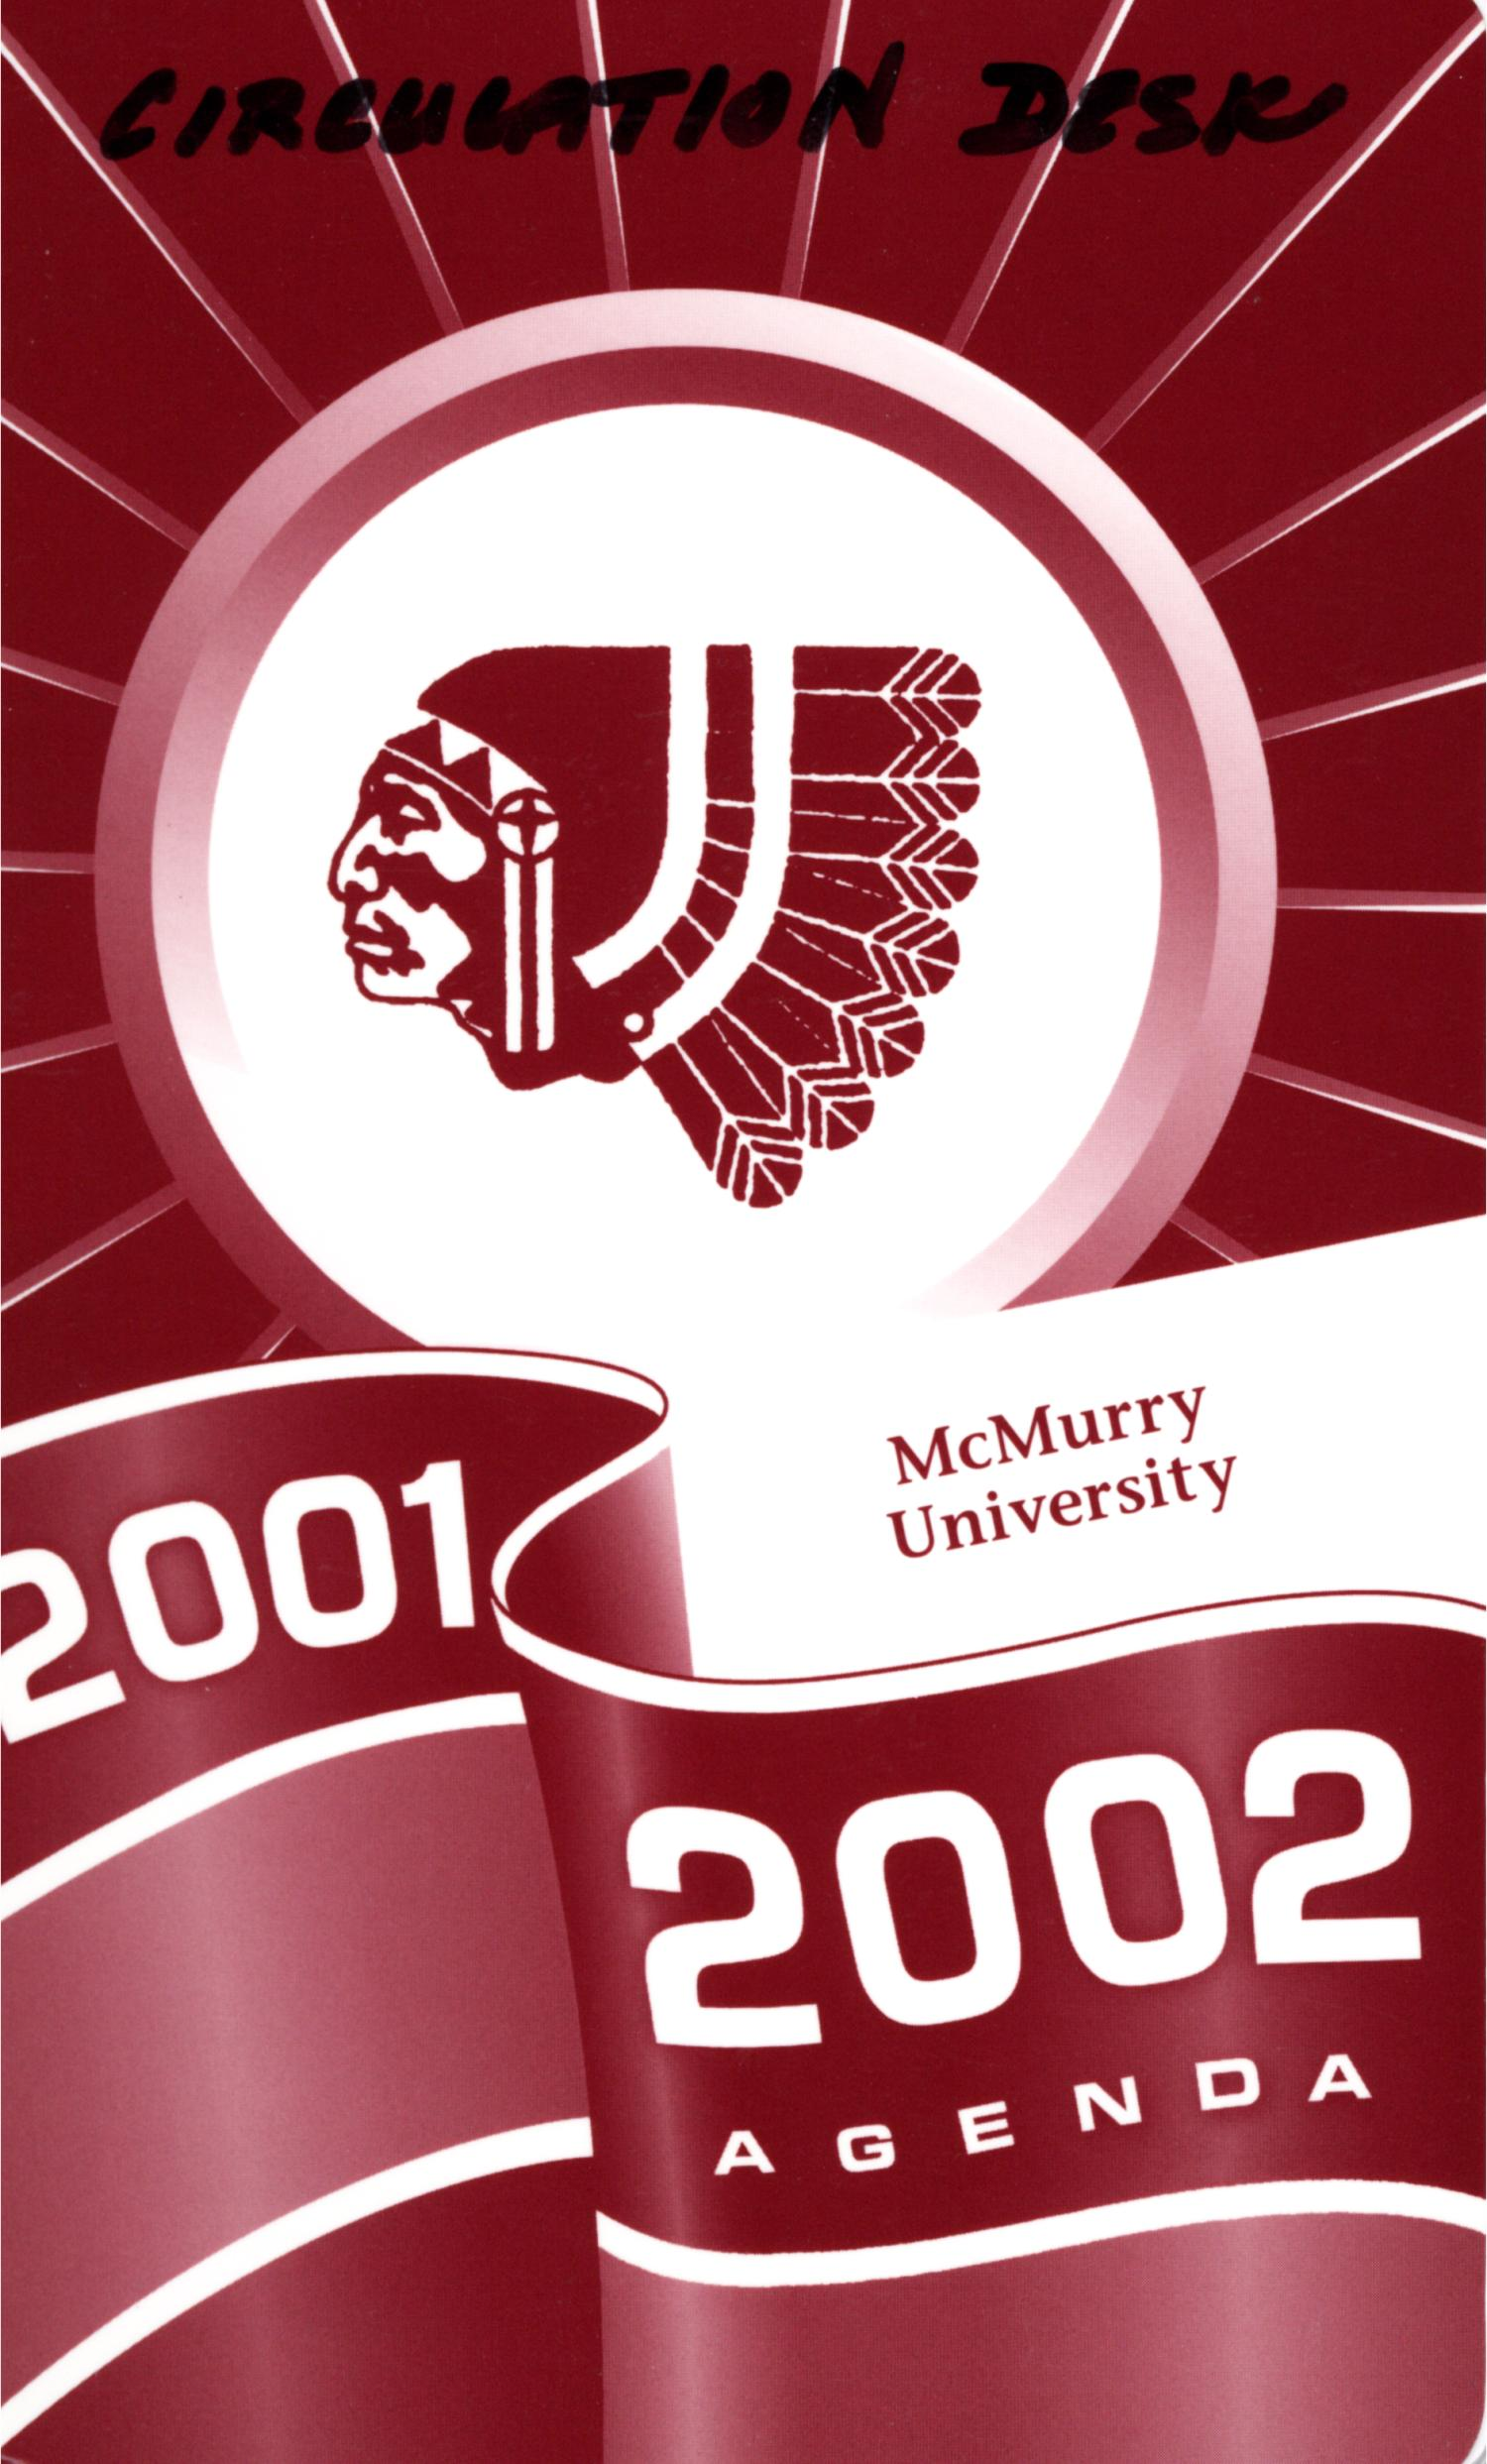 Council Fire, Handbook of McMurry University, 2001-2002                                                                                                      Front Cover